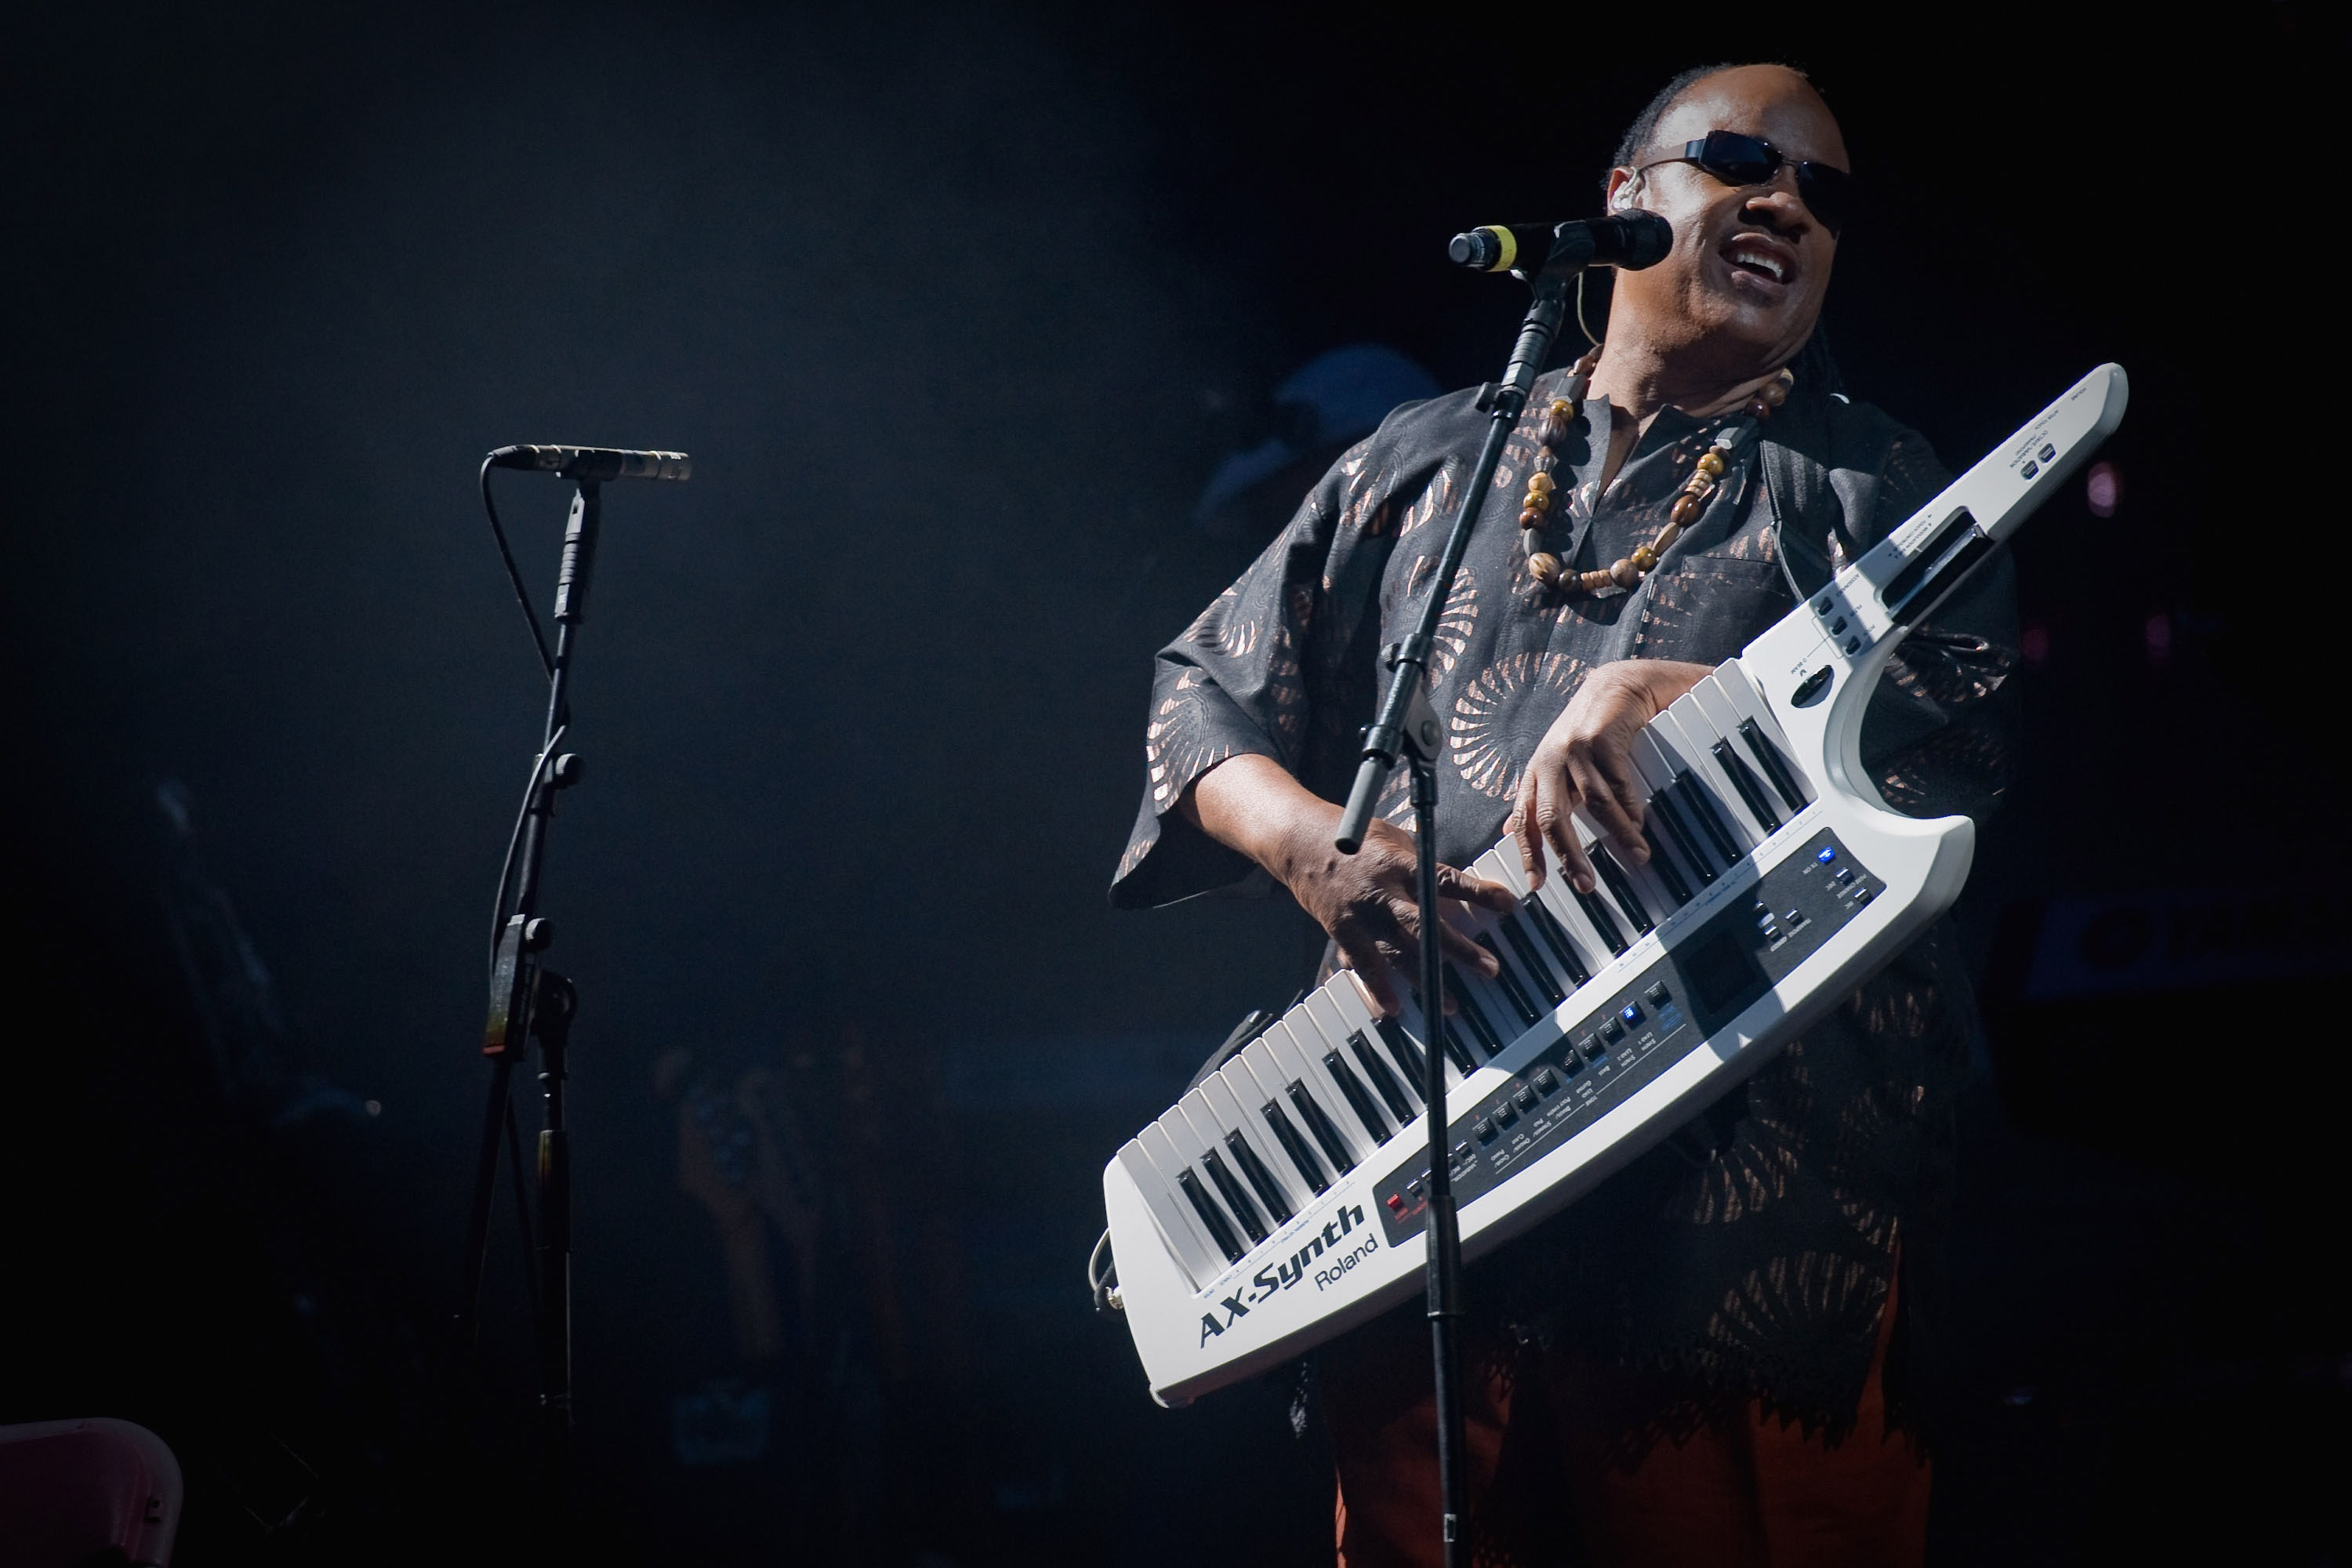 27 June 2010: Stevie Wonder performing on the Pyramid Stage at the Glastonbury Festival in England. (Photograph by Ian Gavan/Getty Images)